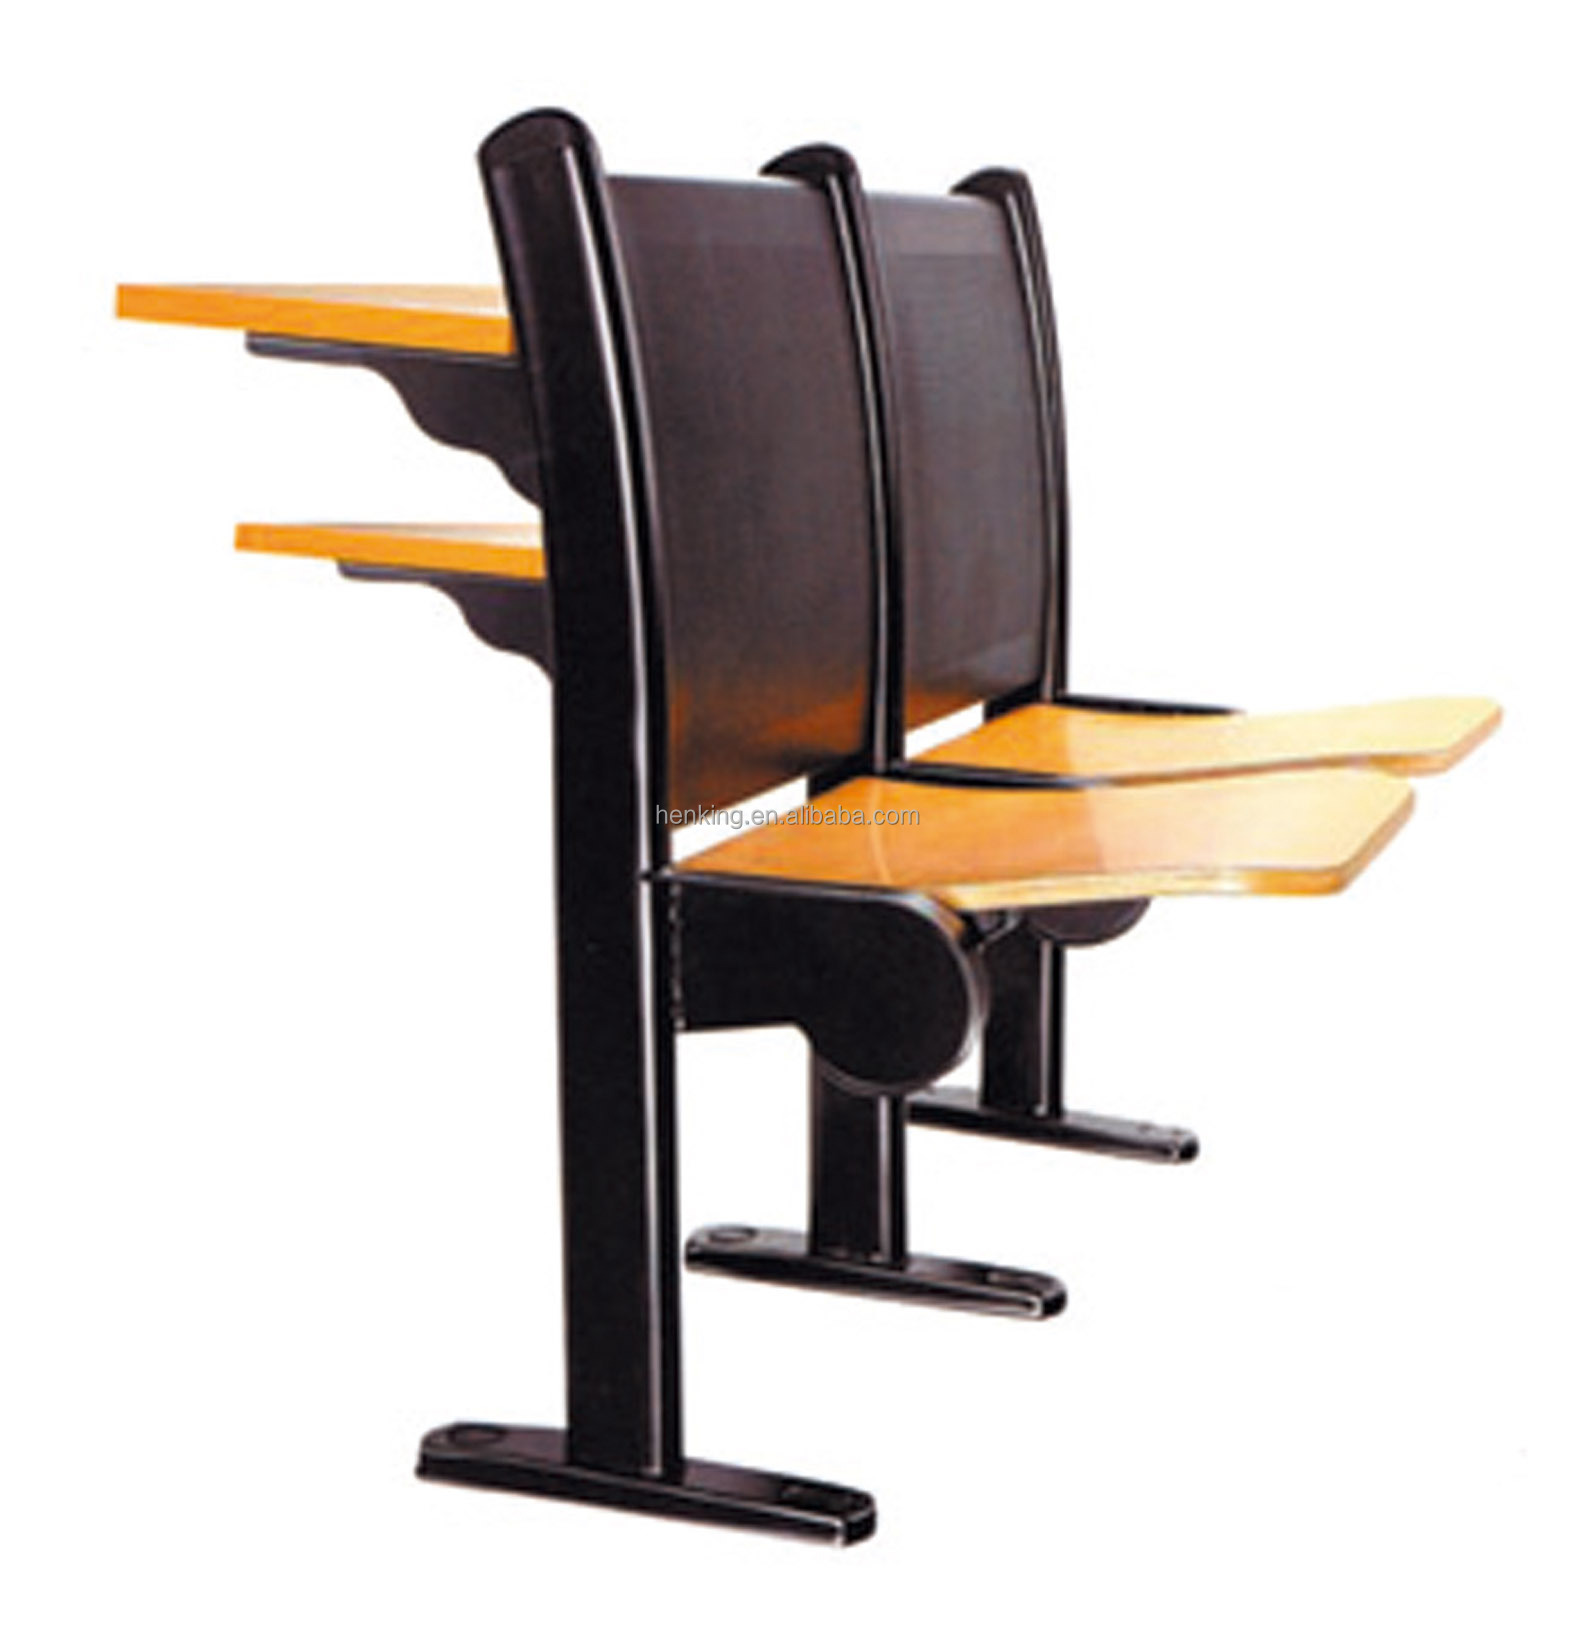 Student Desk And Chair Student Desk And Chair Suppliers and